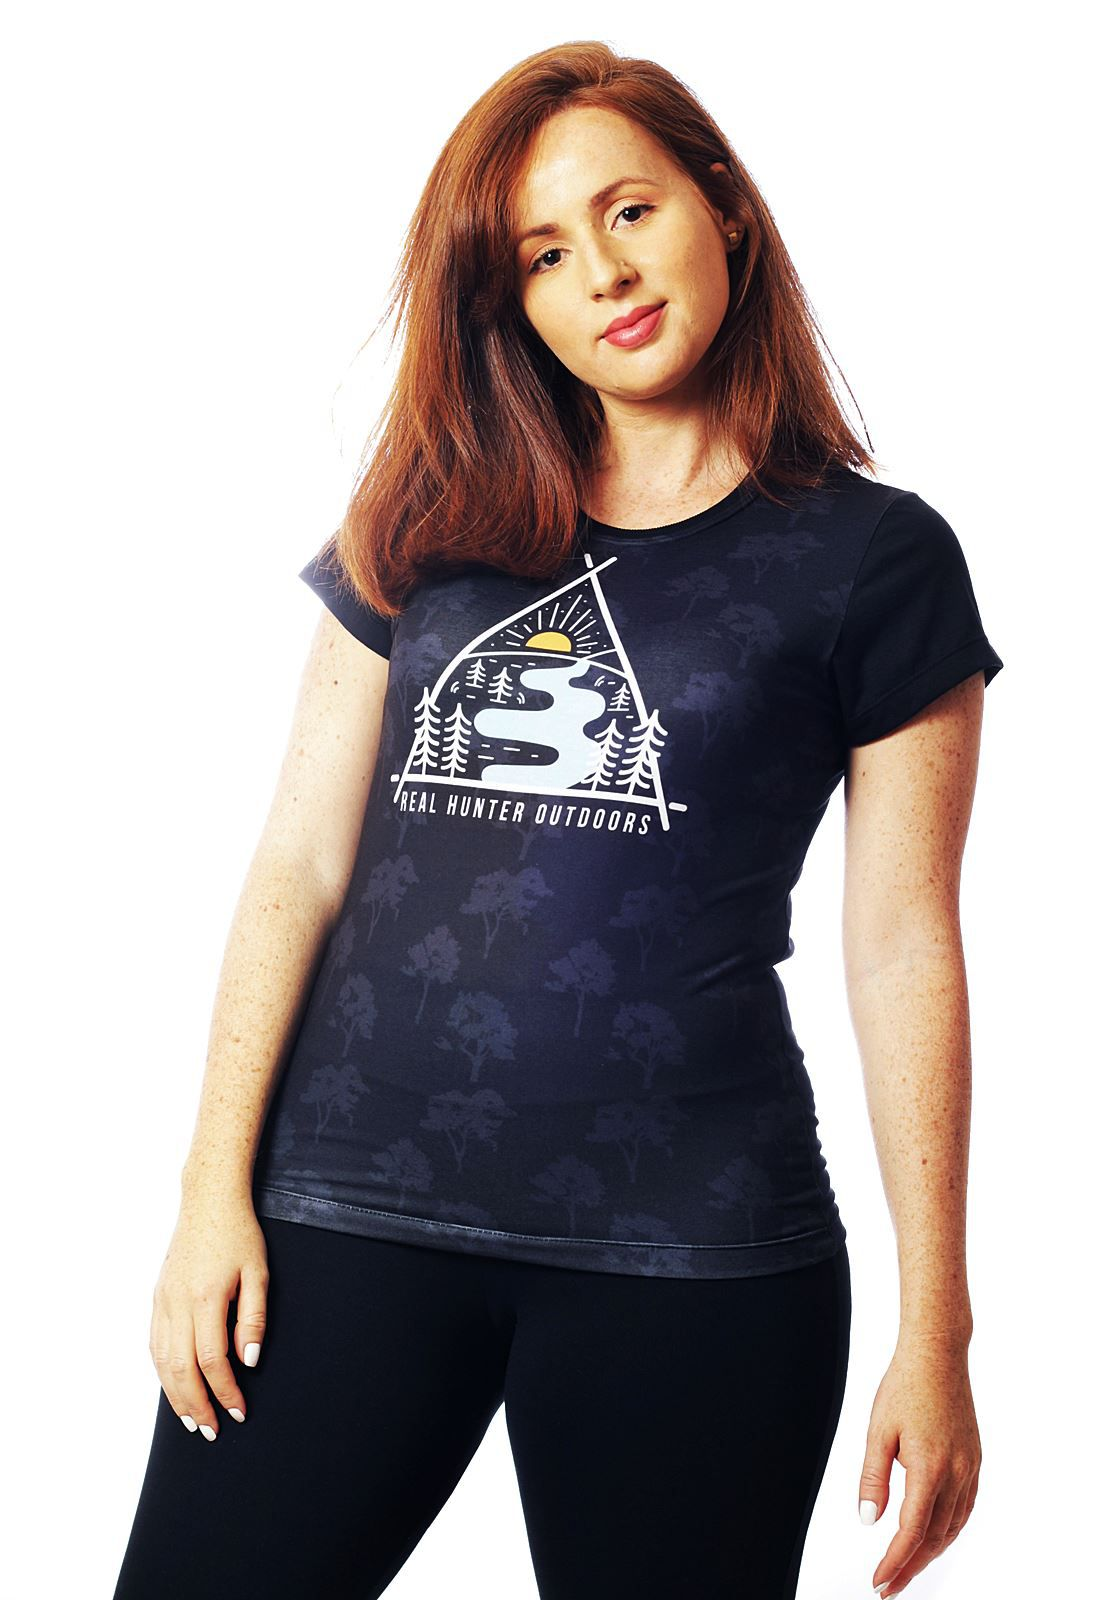 CAMISETA NATUREZA MANGA CURTA FEMININA  - REAL HUNTER OUTDOORS